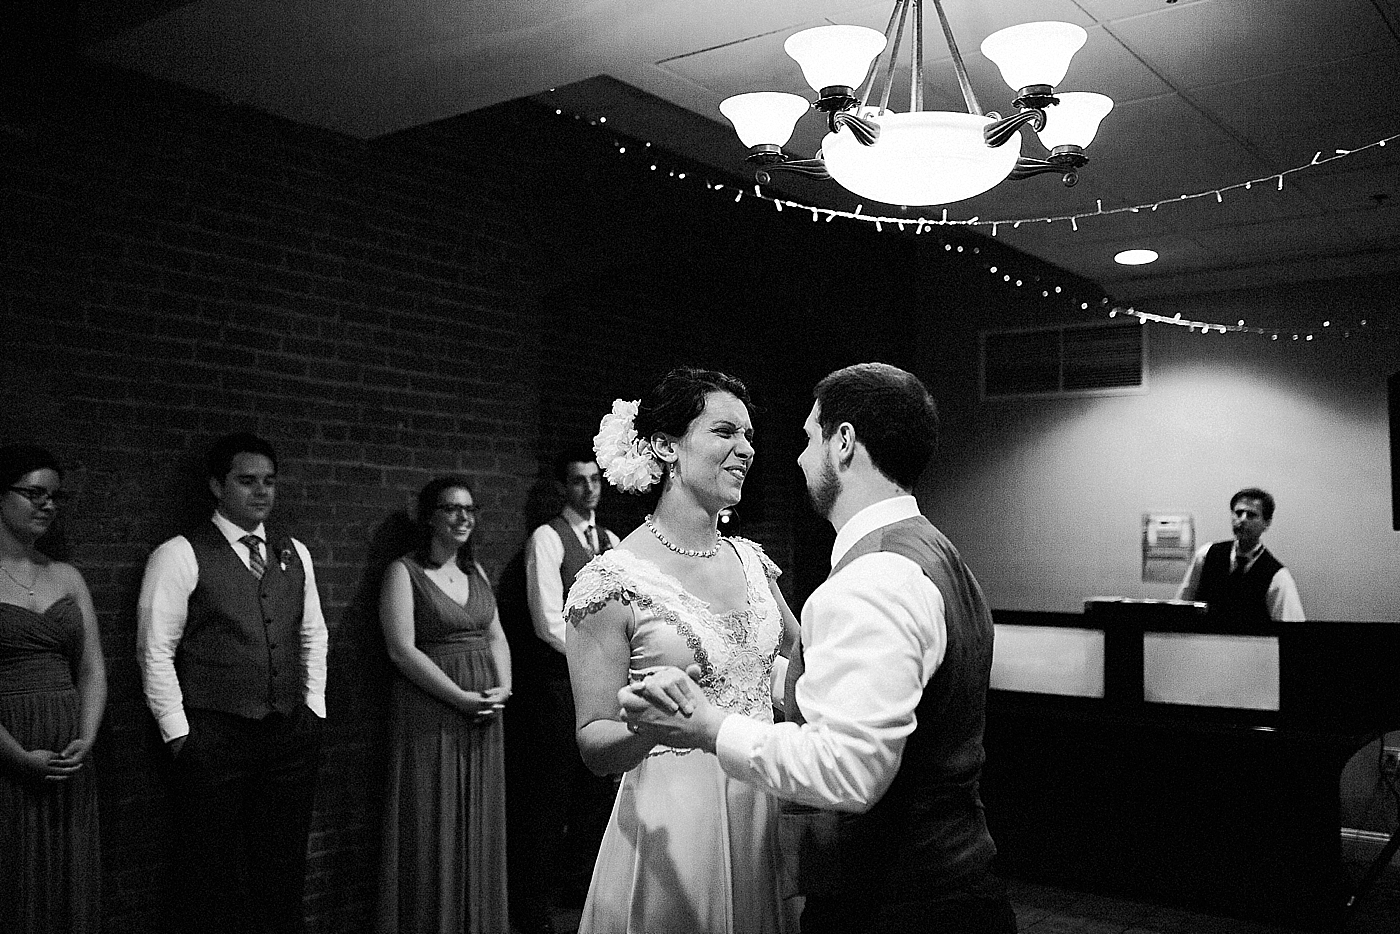 Inn at hendersons wharf wedding 1st dance